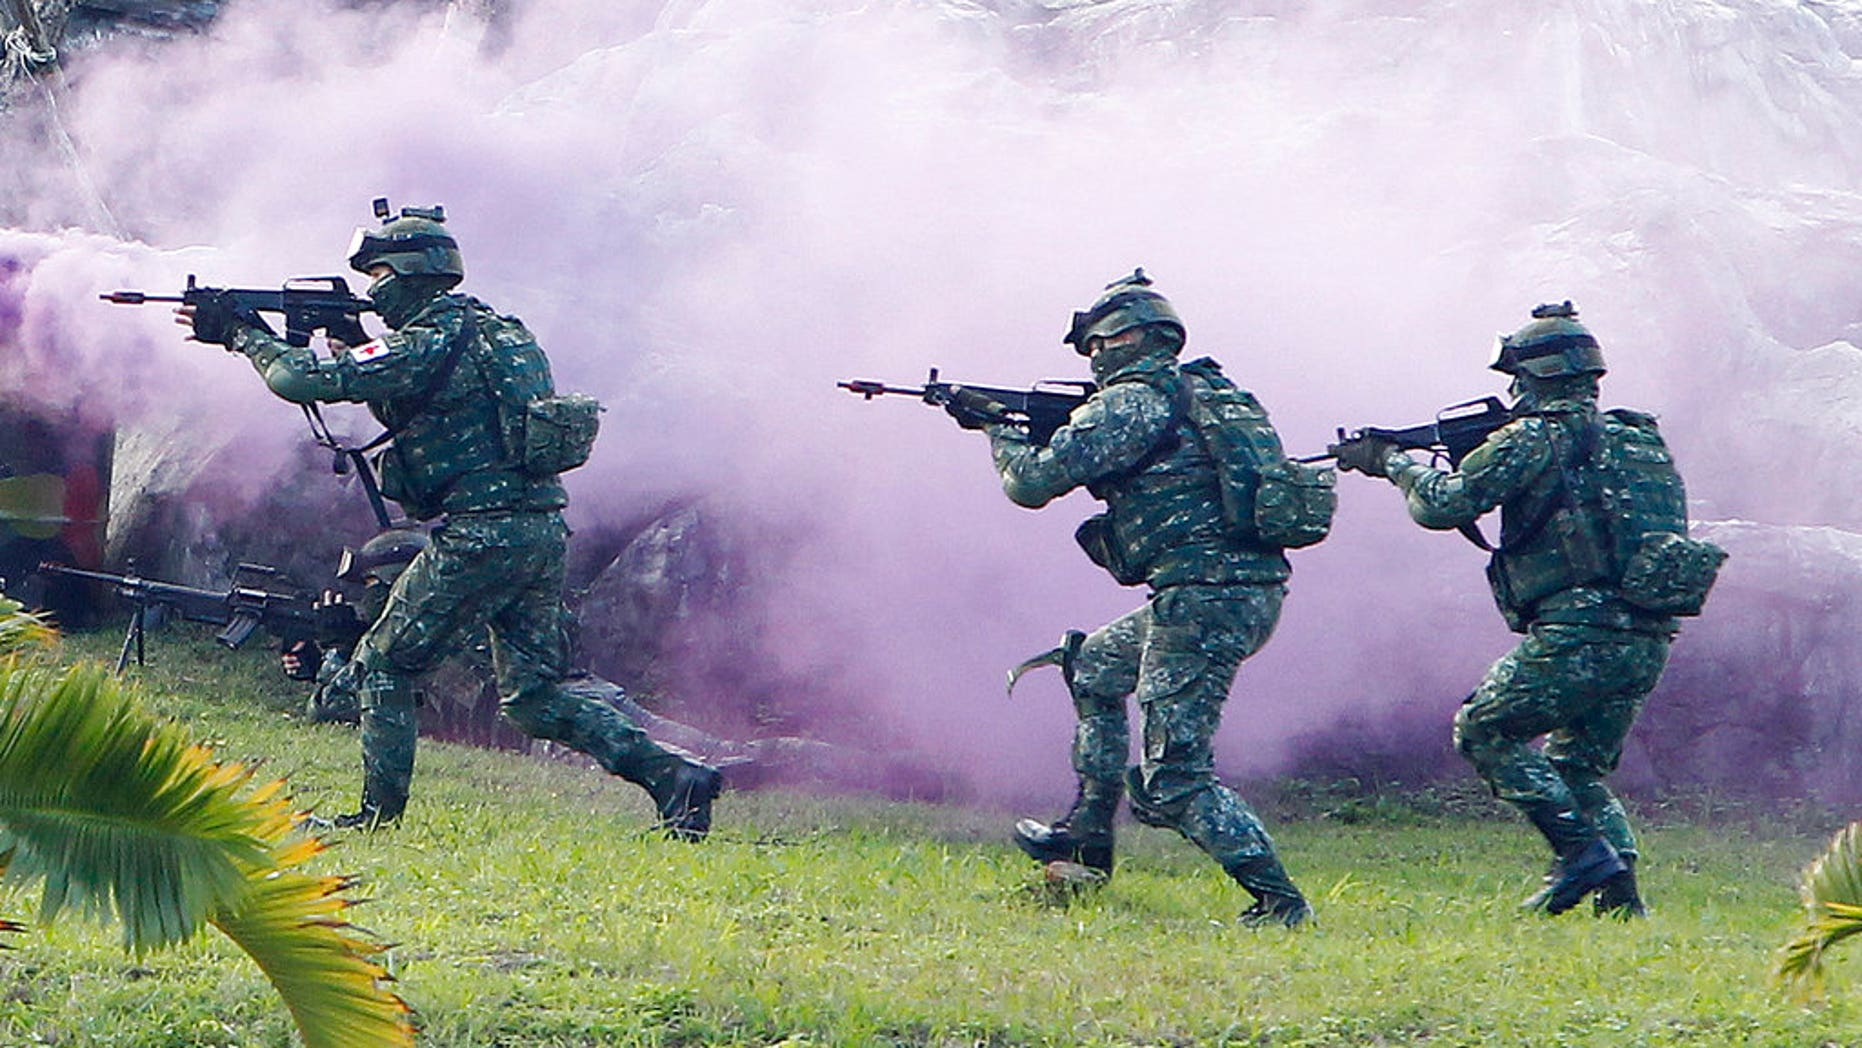 FILE: Soldiers from Taiwan's special forces move through colored smoke during a military exercise in Taipei, Taiwan. (AP Photo/Chiang Ying-ying)